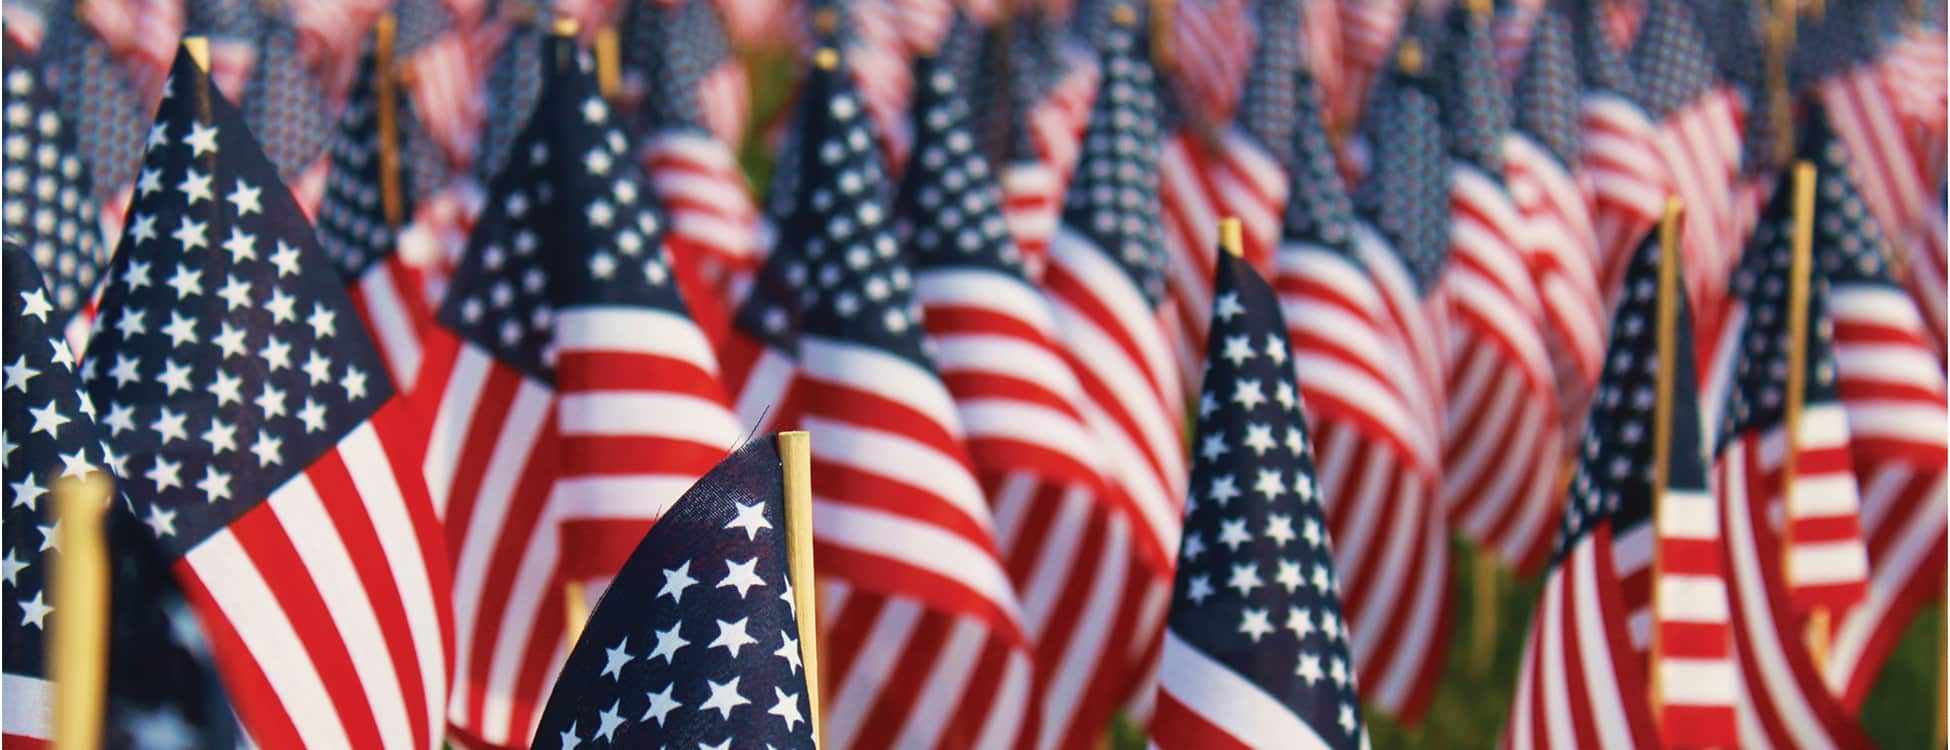 veterans day, american flag, united states